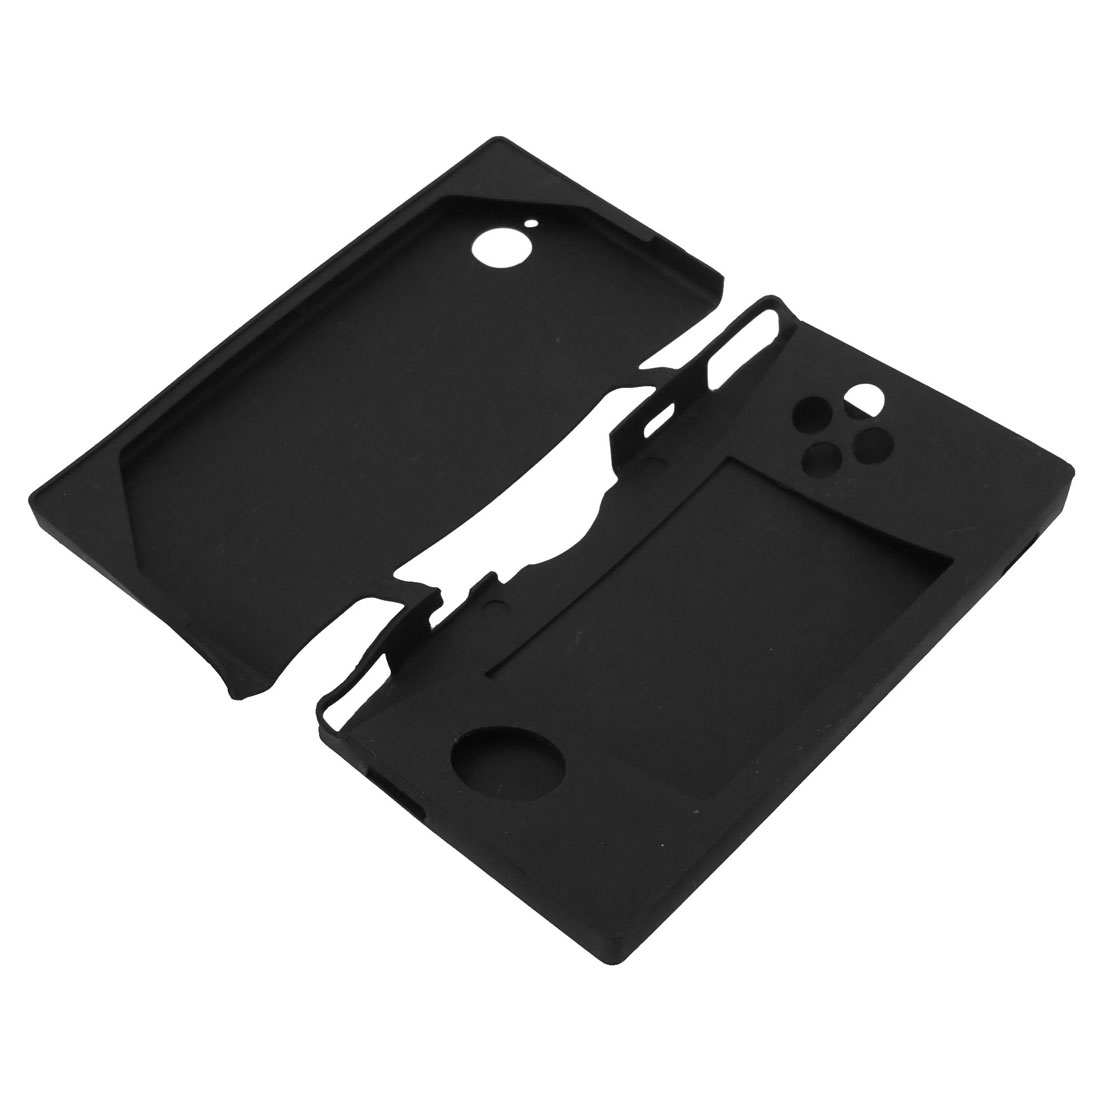 Black Soft Silicone Skin Cover Case Protector Guard for Nintendo DSi NDSi